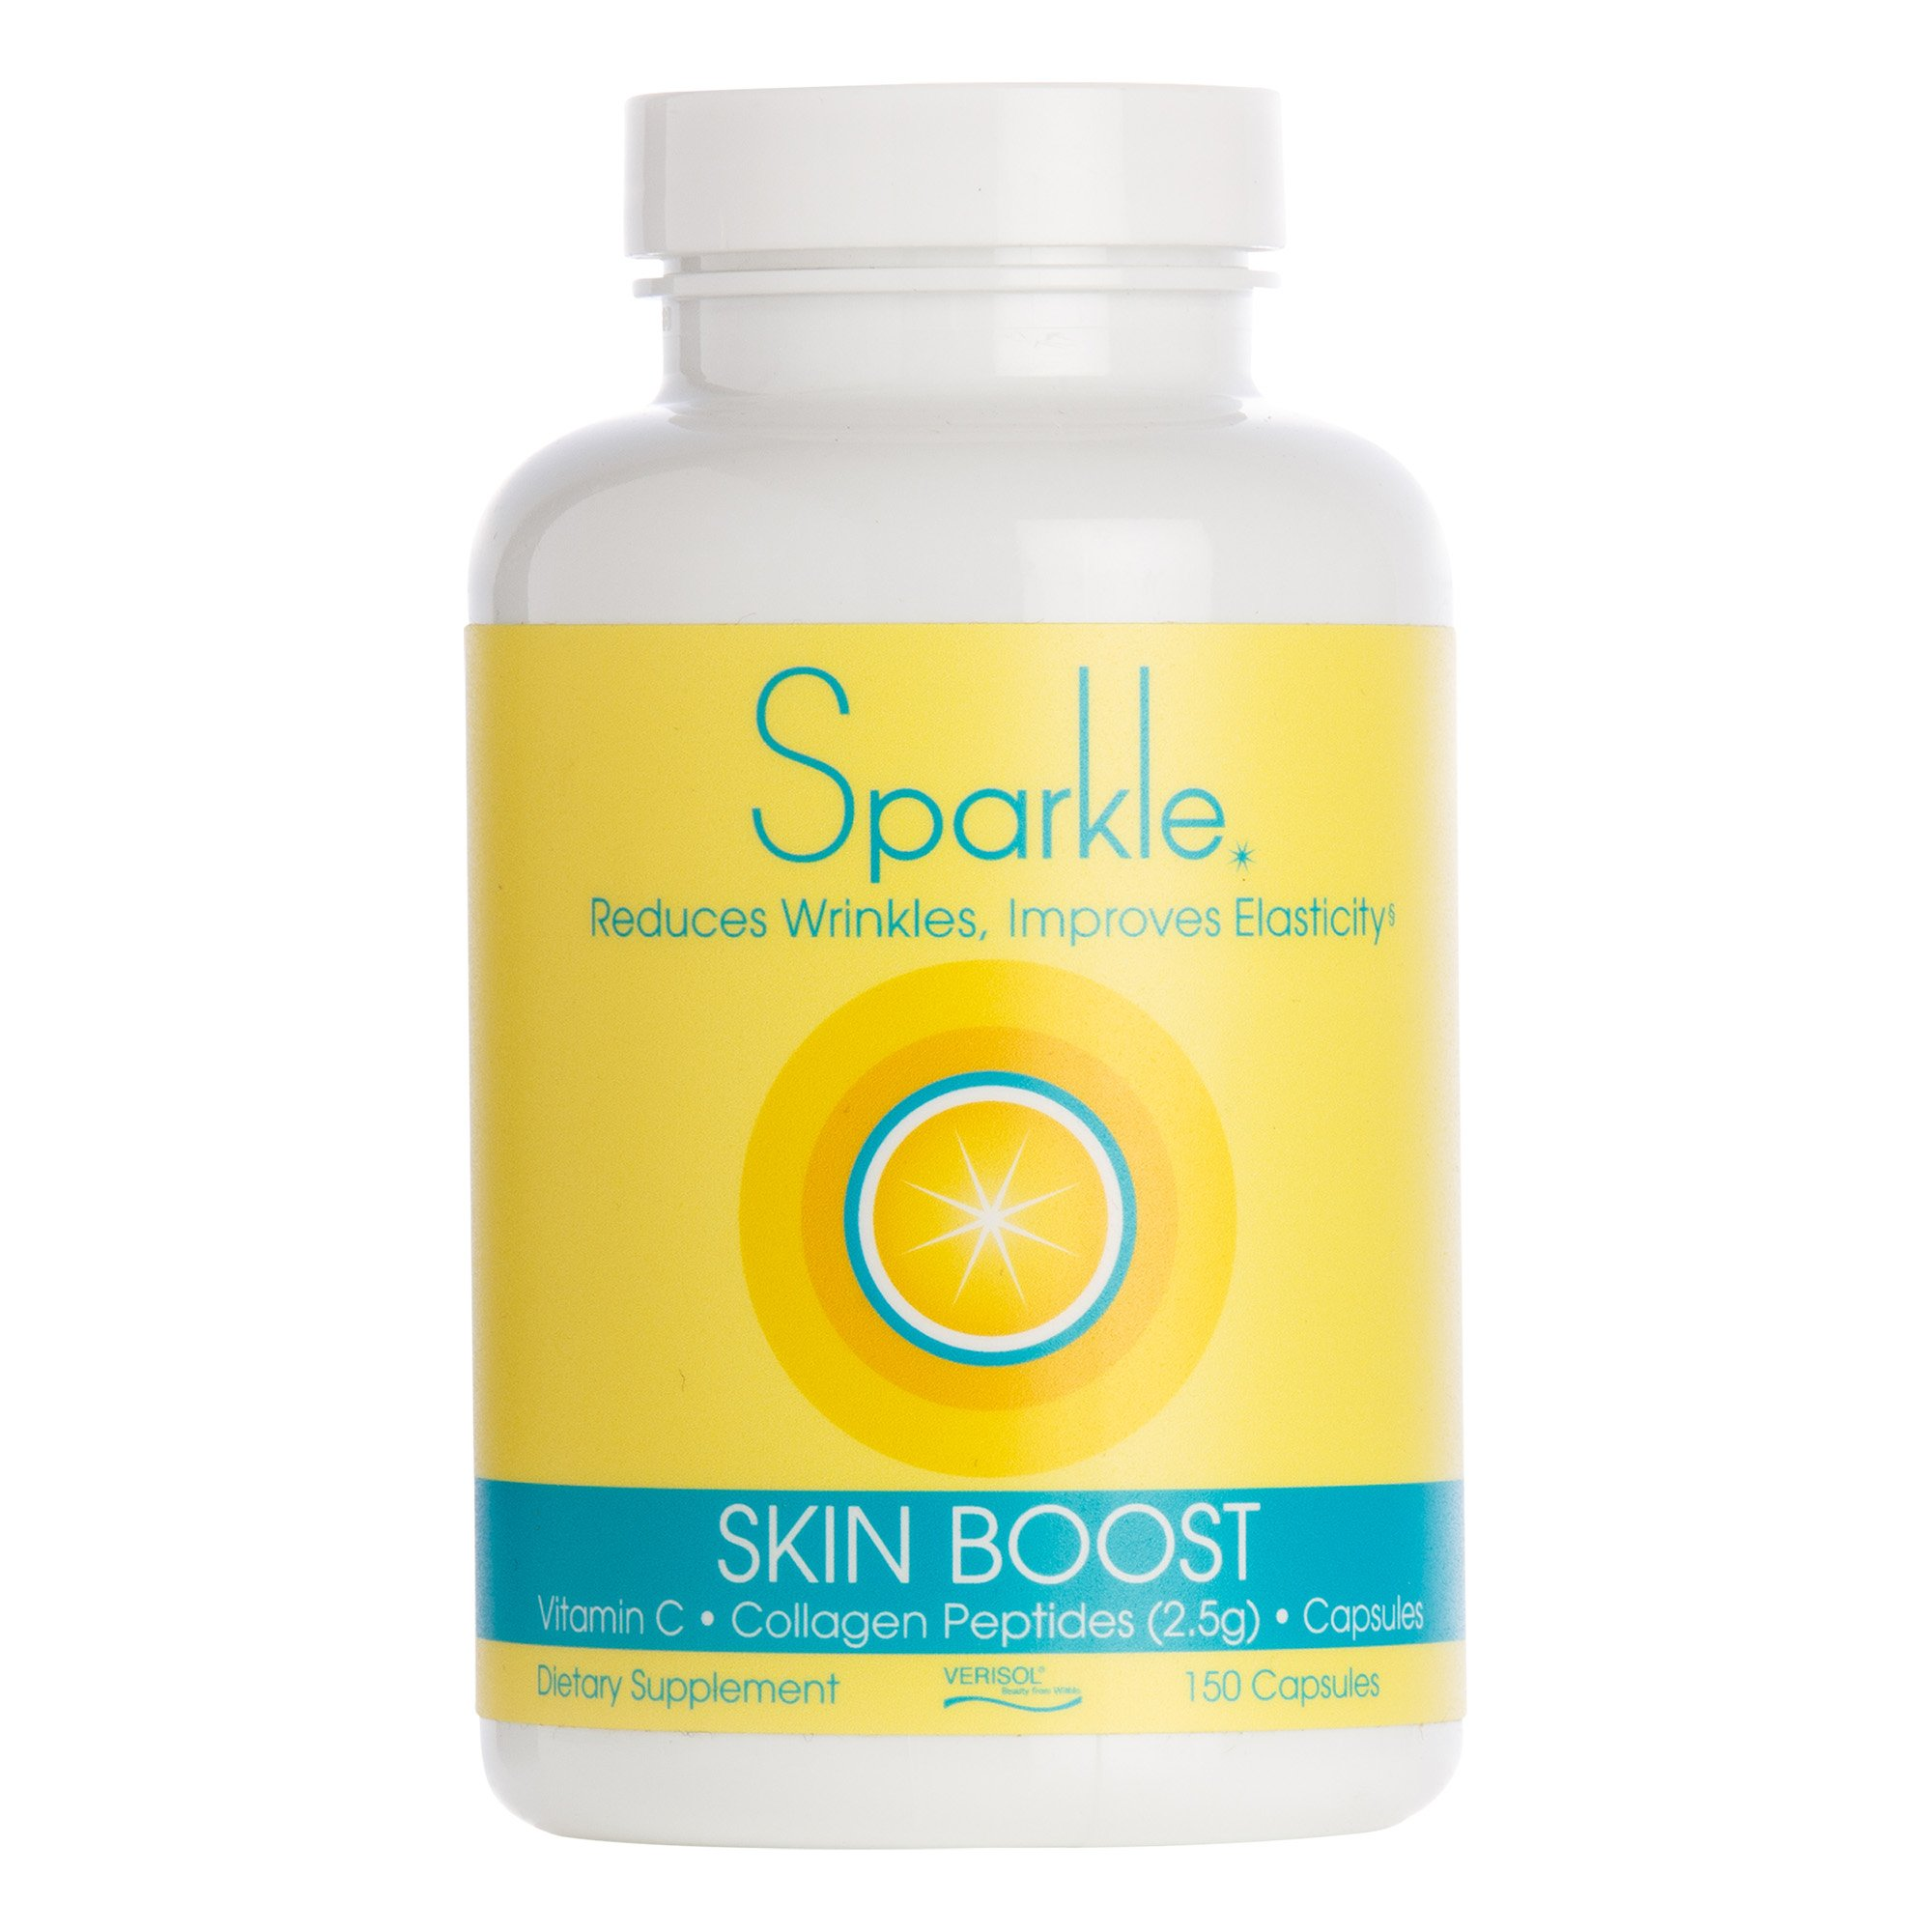 Sparkle Collagen Peptide Supplement Capsules 30 days Pills 2500mg featuring Verisol Bioactive Collagen Peptides,150 capsules